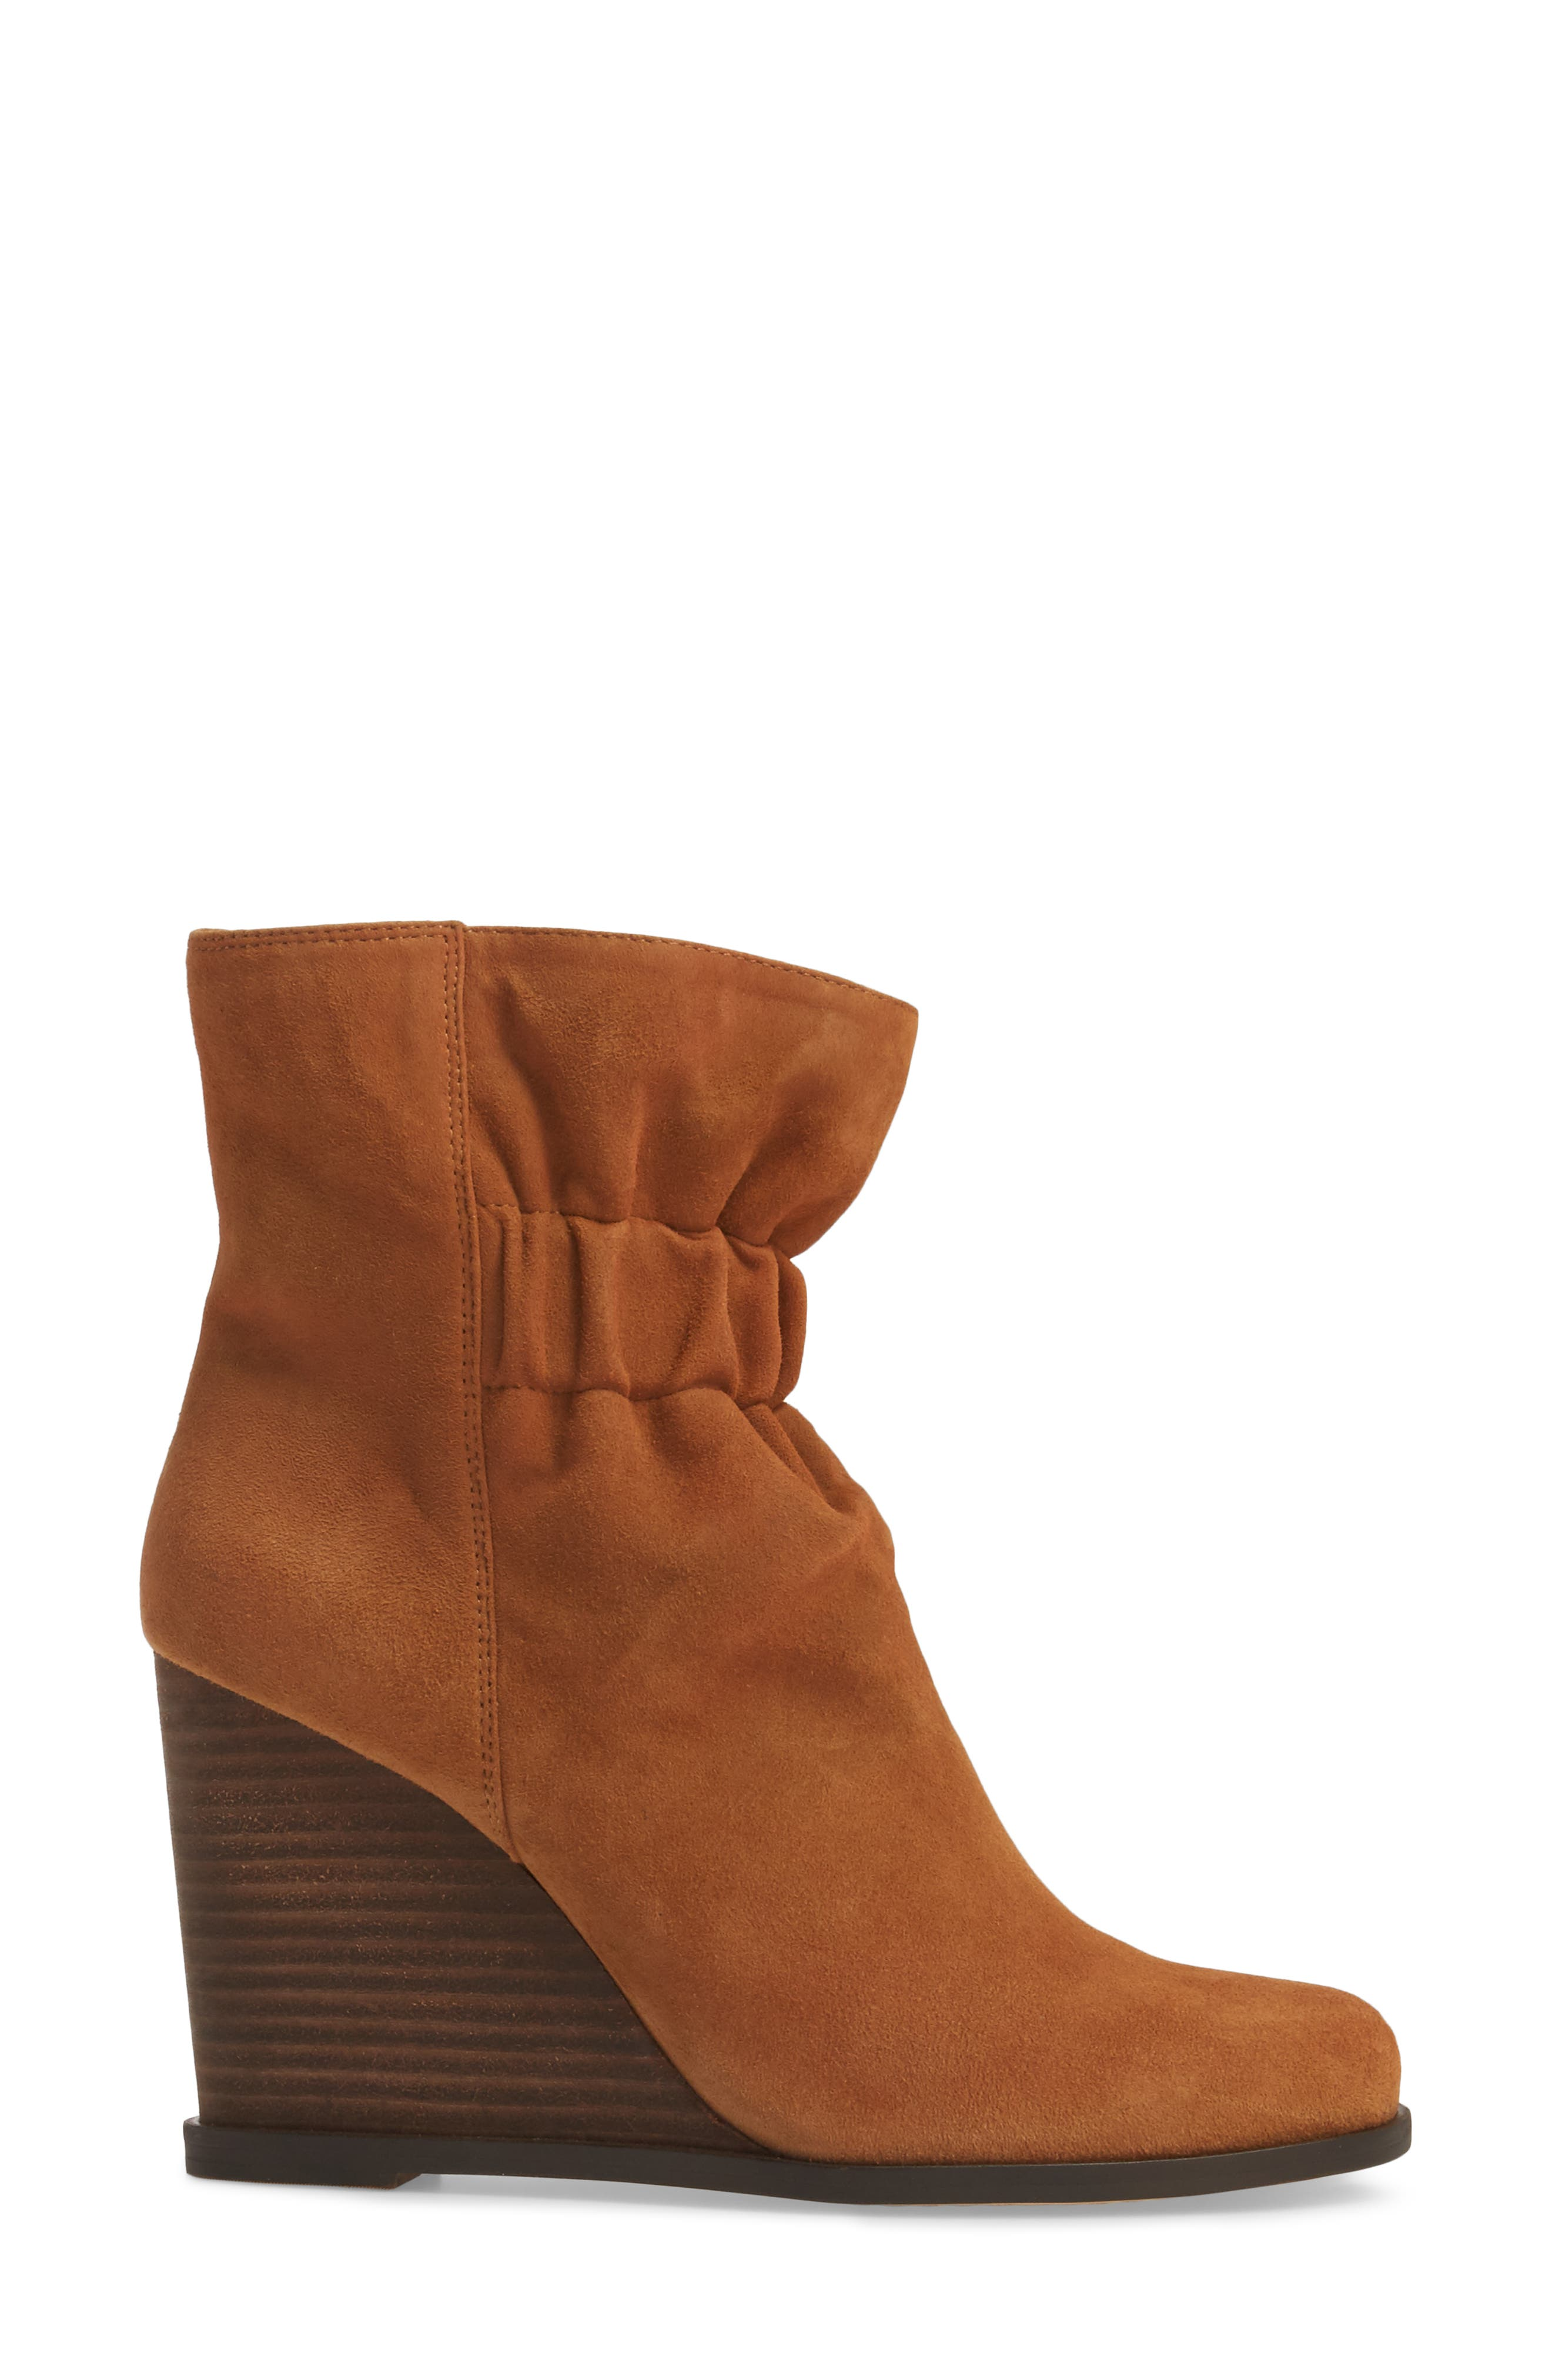 Alternate Image 3  - Splendid Rebecca Wedge Bootie (Women)